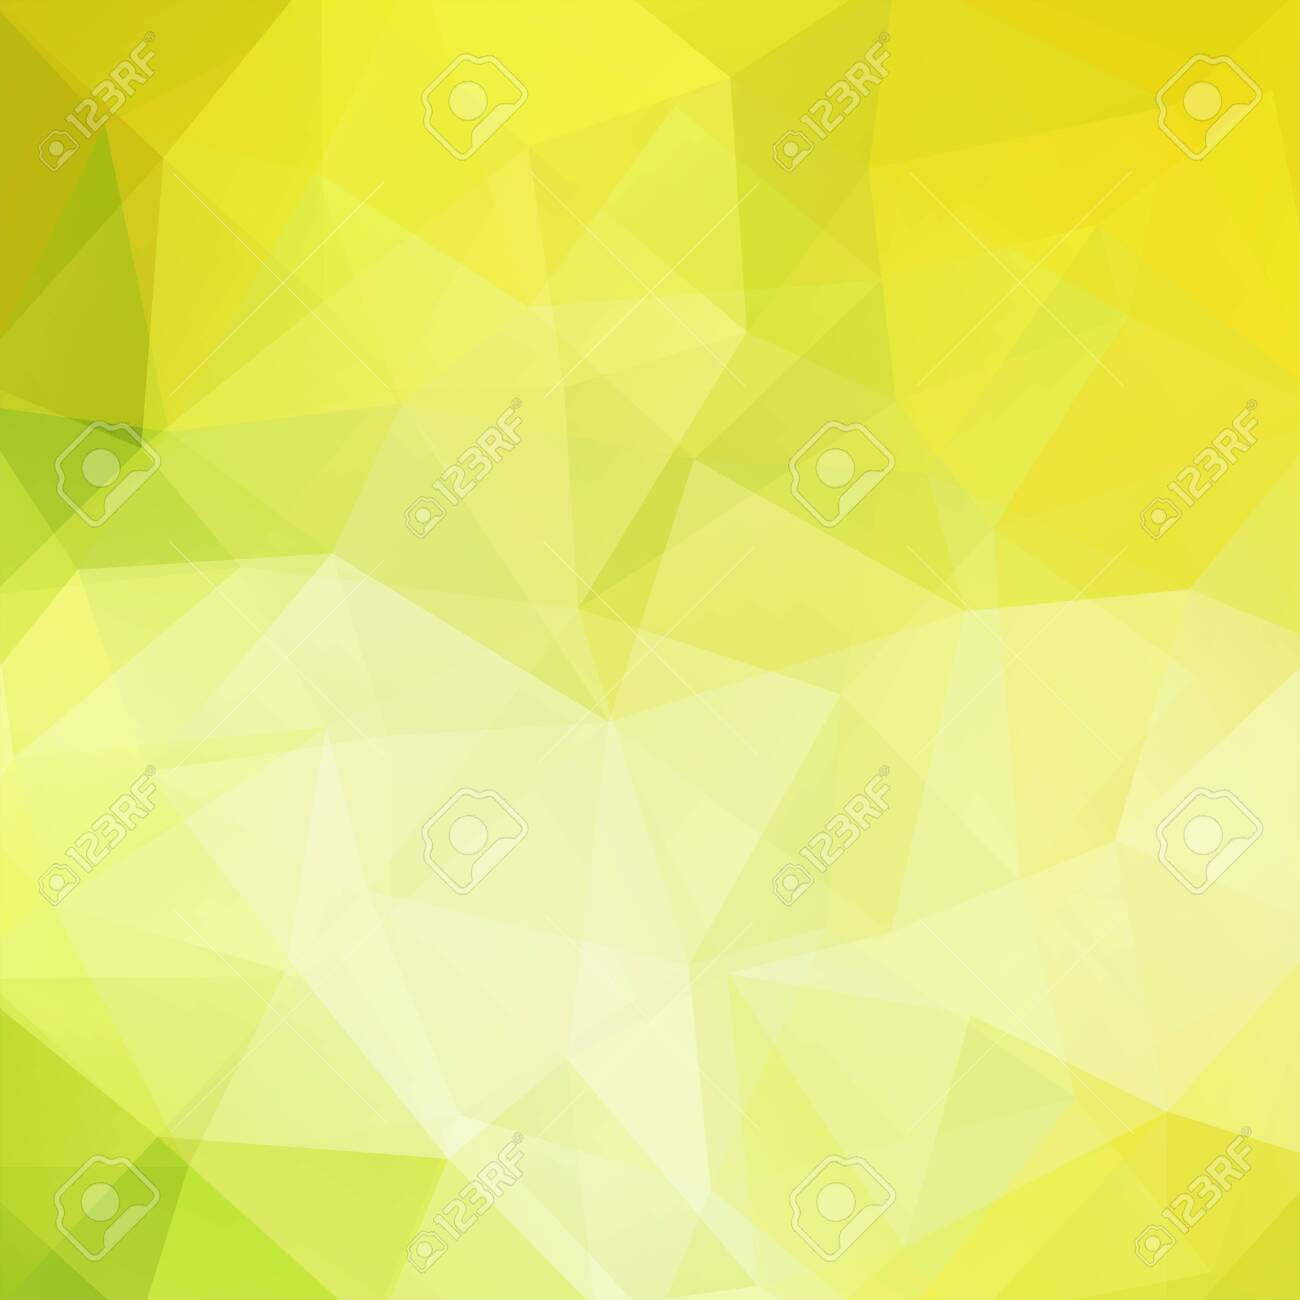 Background made of yellow, green triangles. Square composition with geometric shapes. - 121958414